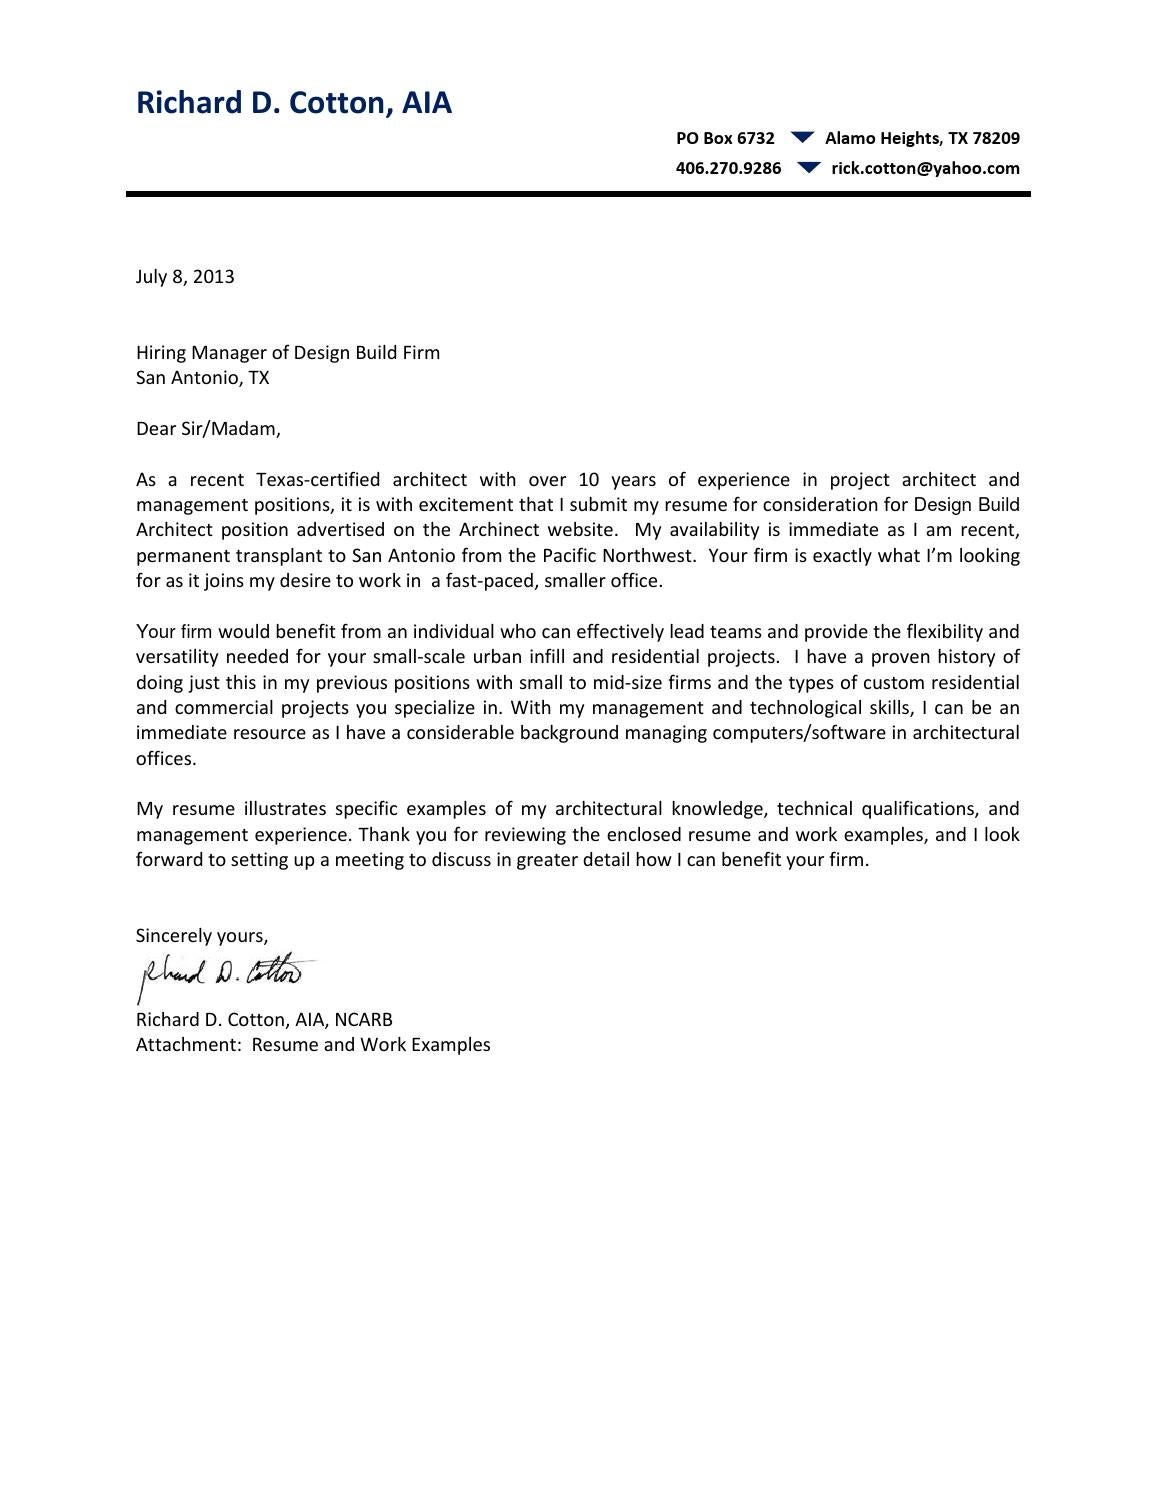 cover letter resume examples richard cotton by rick cotton